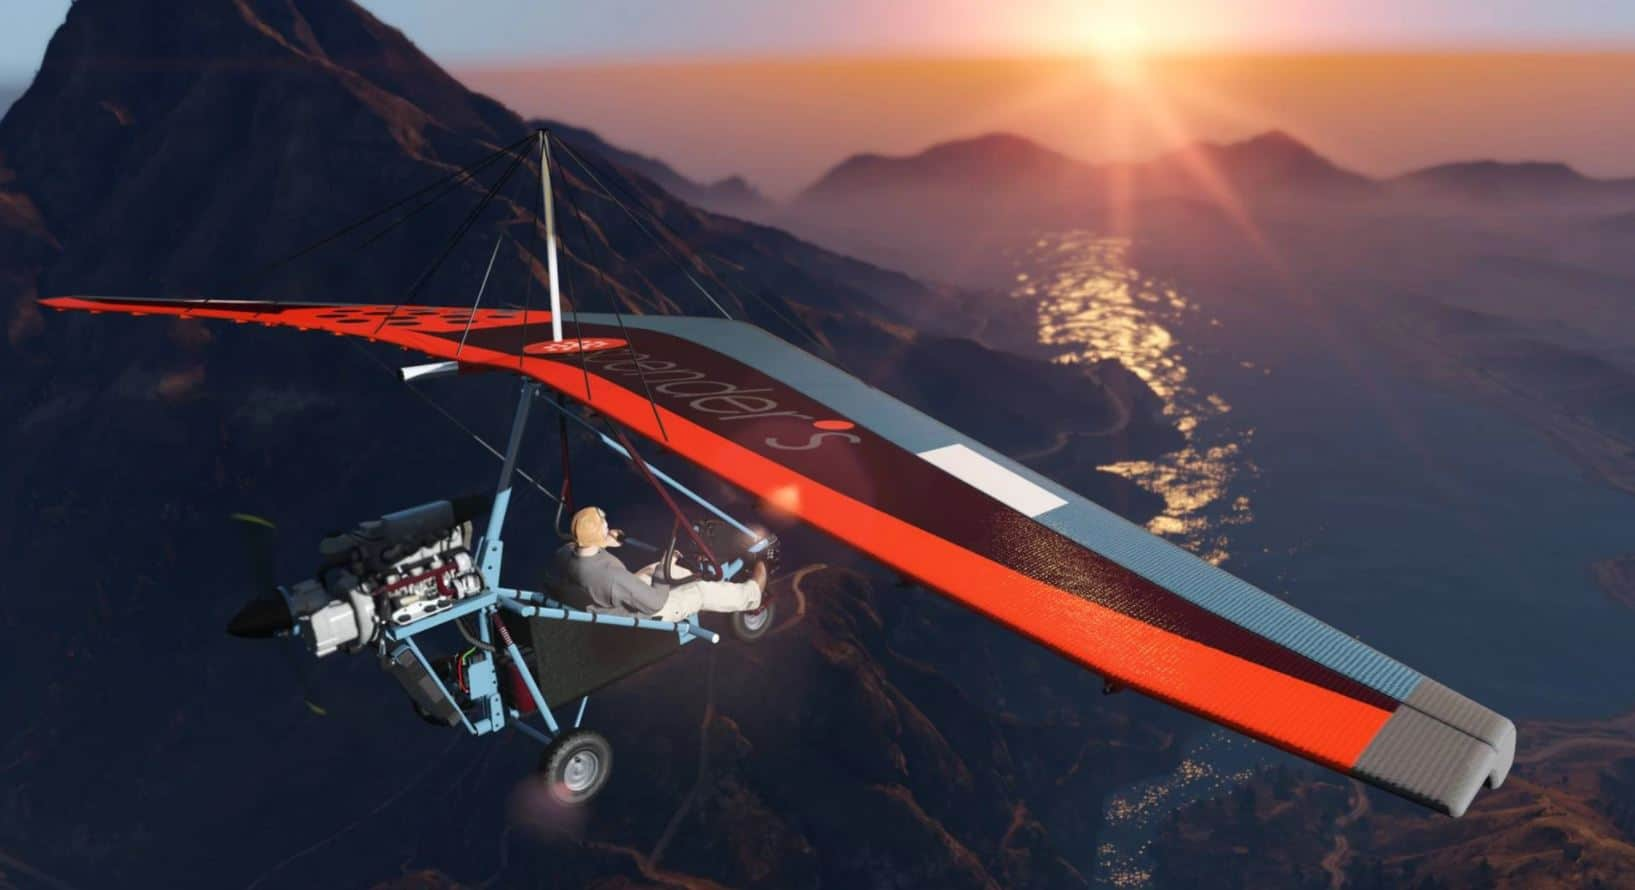 the-nagasaki-ultralight-might-be-the-ideal-way-to-vacation-in-gta-online